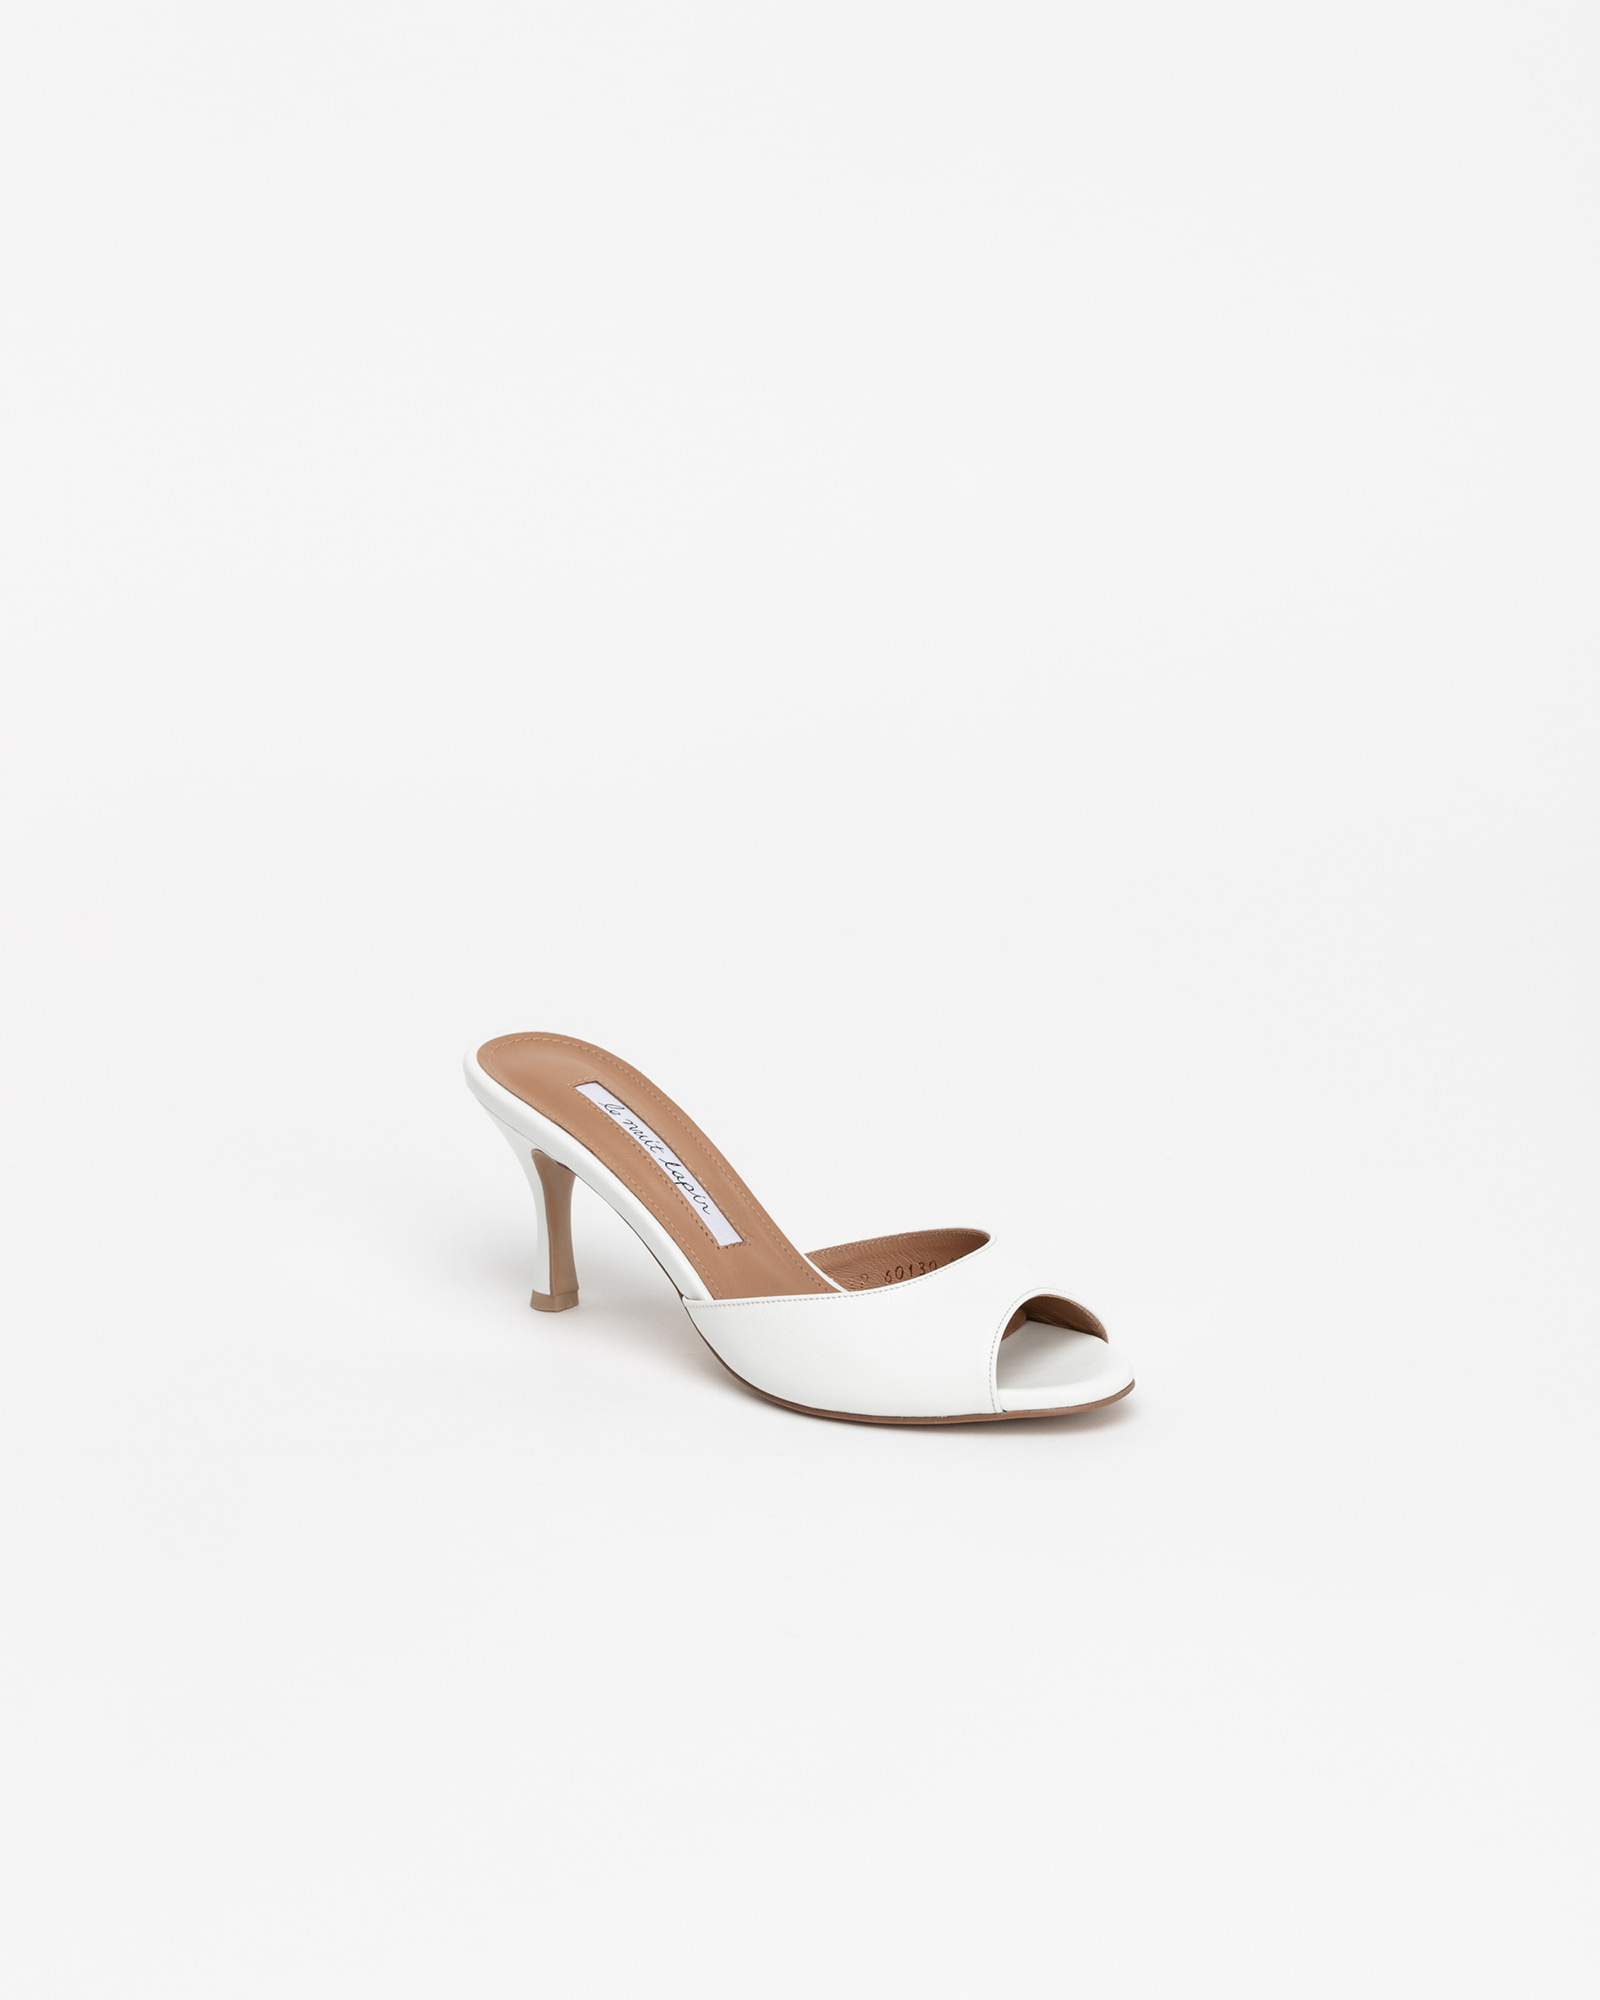 Chartres Mules in White